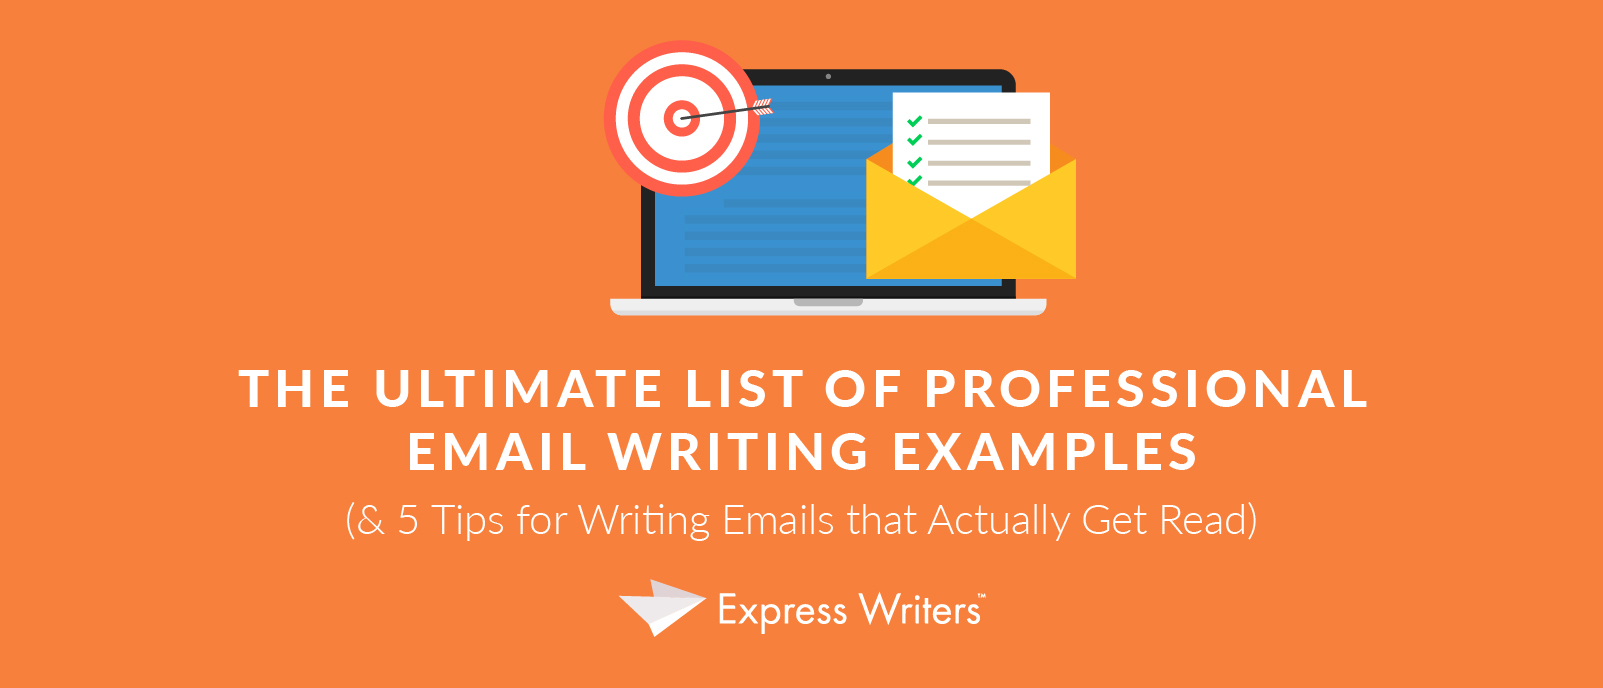 top professional email writing examples